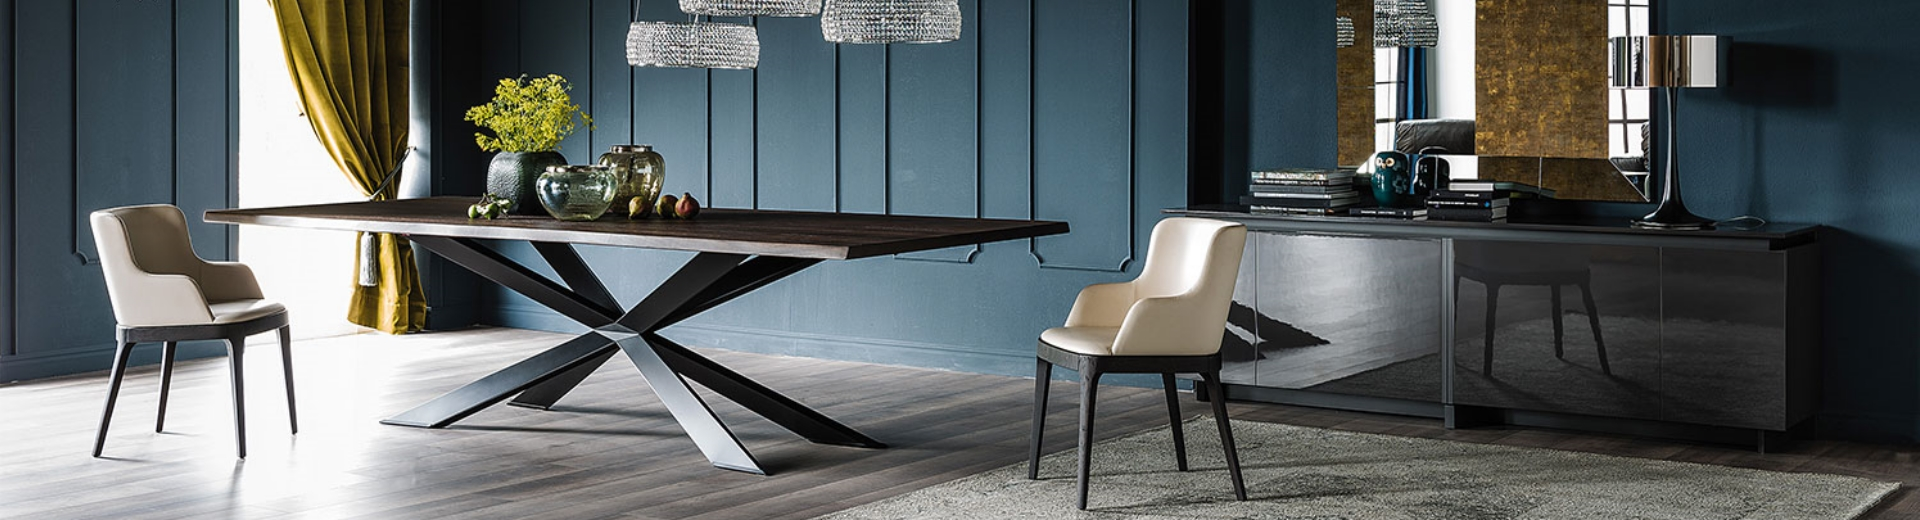 Spyder wood and the elegance of Cattelan Italia